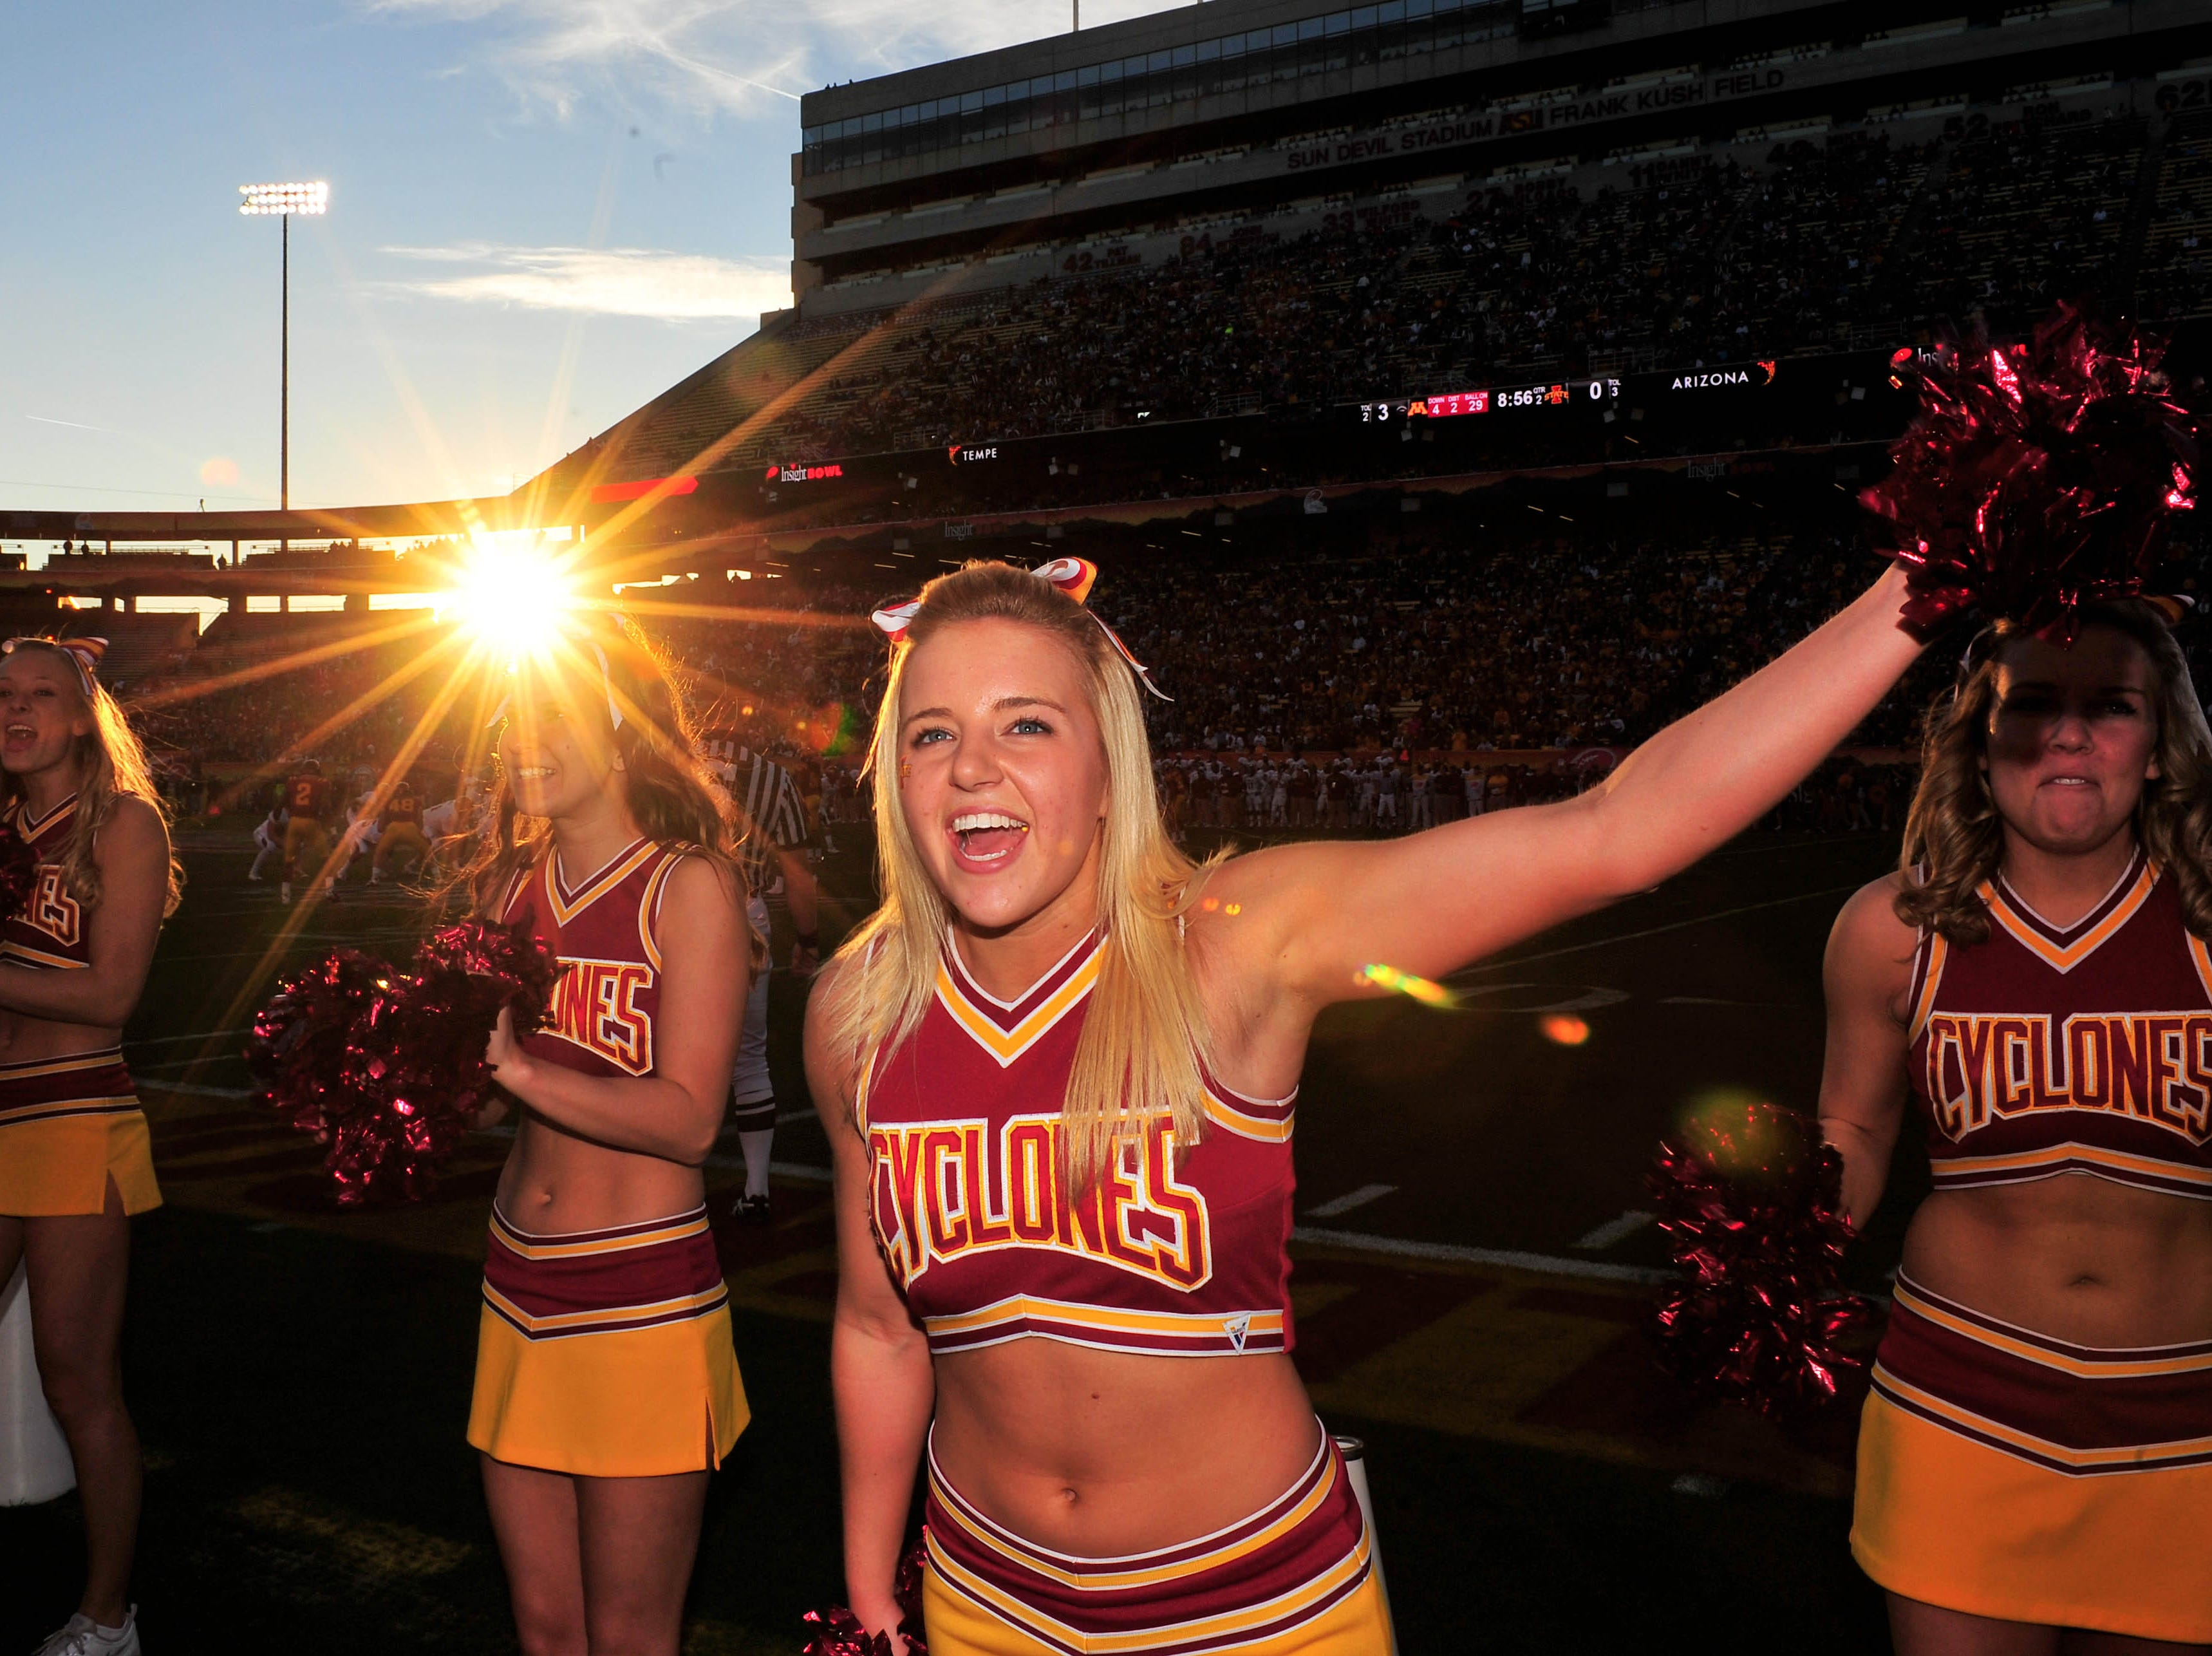 Dec 31, 2009; Tempe, AZ, USA; An Iowa State Cyclones cheerleader cheers on her team as the sun sets behind Sun Devil Stadium during the 2nd quarter of a game against the Minnesota Golden Gophers in the 2009 Insight Bowl.  Mandatory Credit: Chris Morrison-USA TODAY Sports